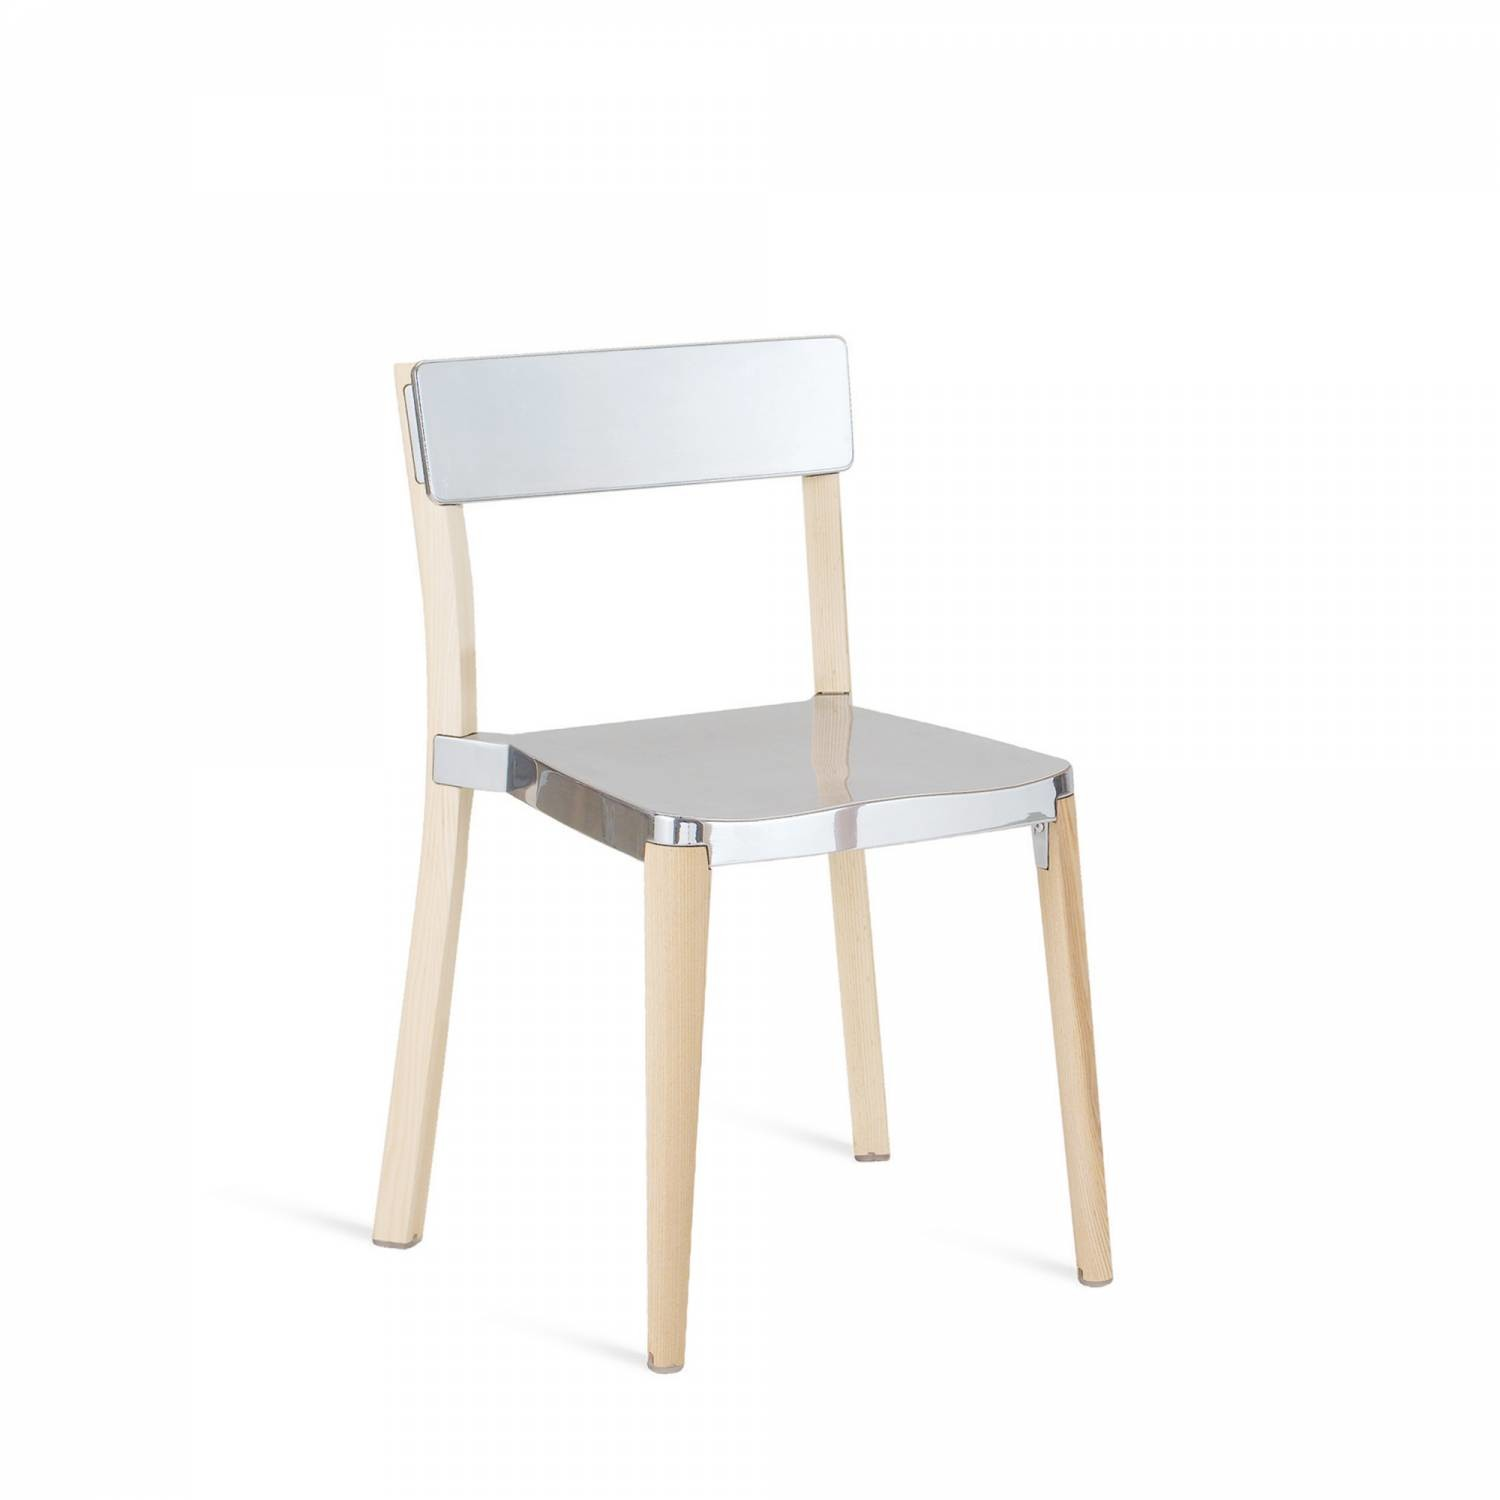 Lancaster Stacking Chair Polished Aluminium, Light Wood Base, Without Seat Pad, Without Back Pad